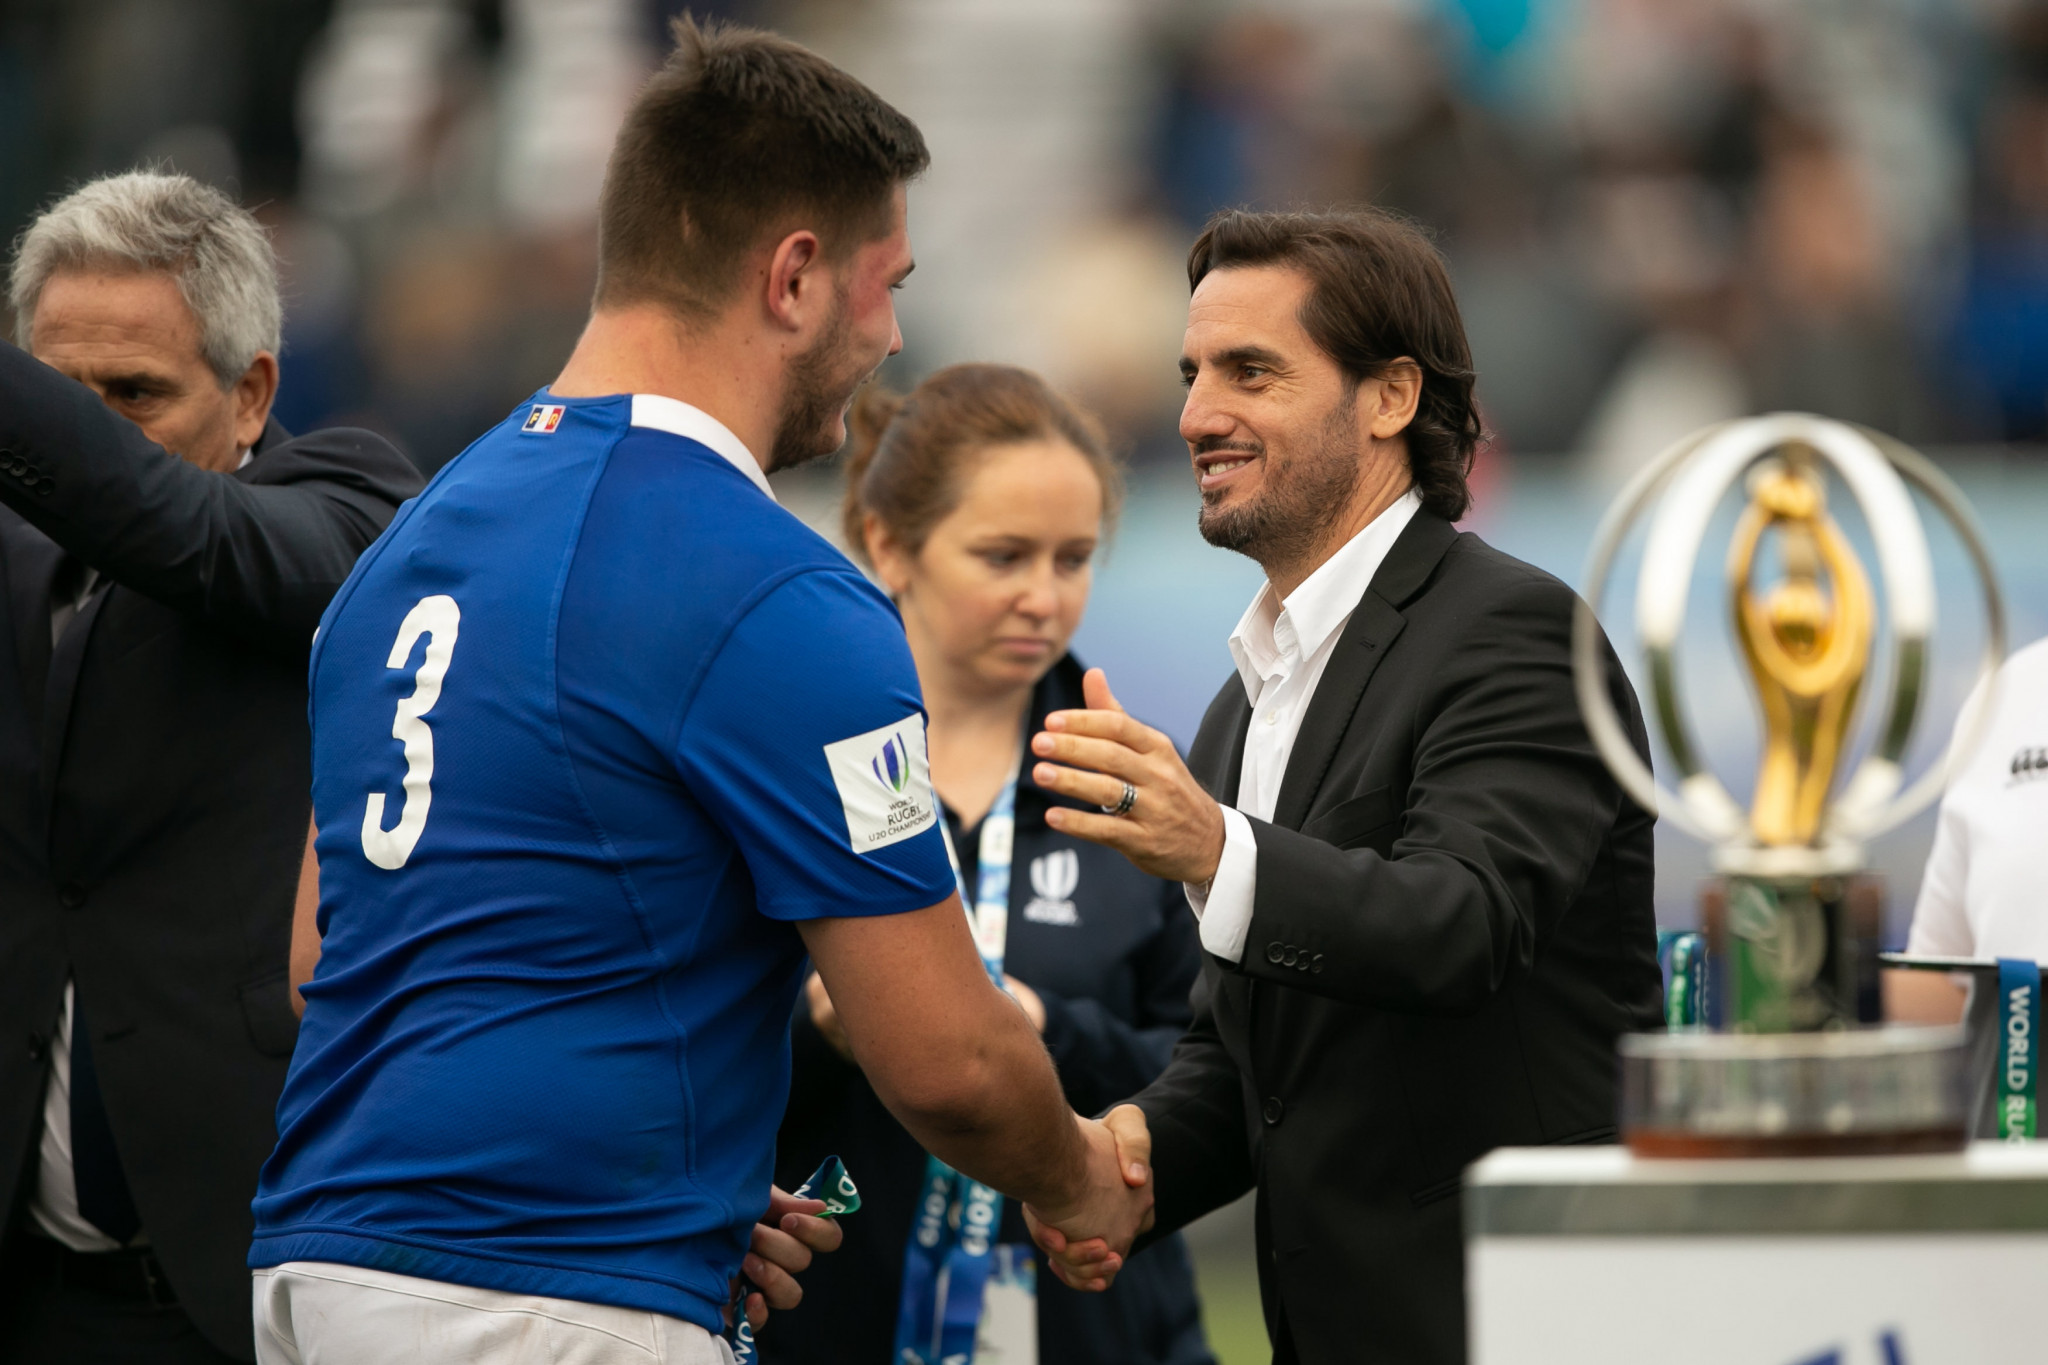 Agustín Pichot, right, had questioned the voting system, which gives Tier 1 nations three votes but others, such as Fiji and Georgia, only one ©Getty Images